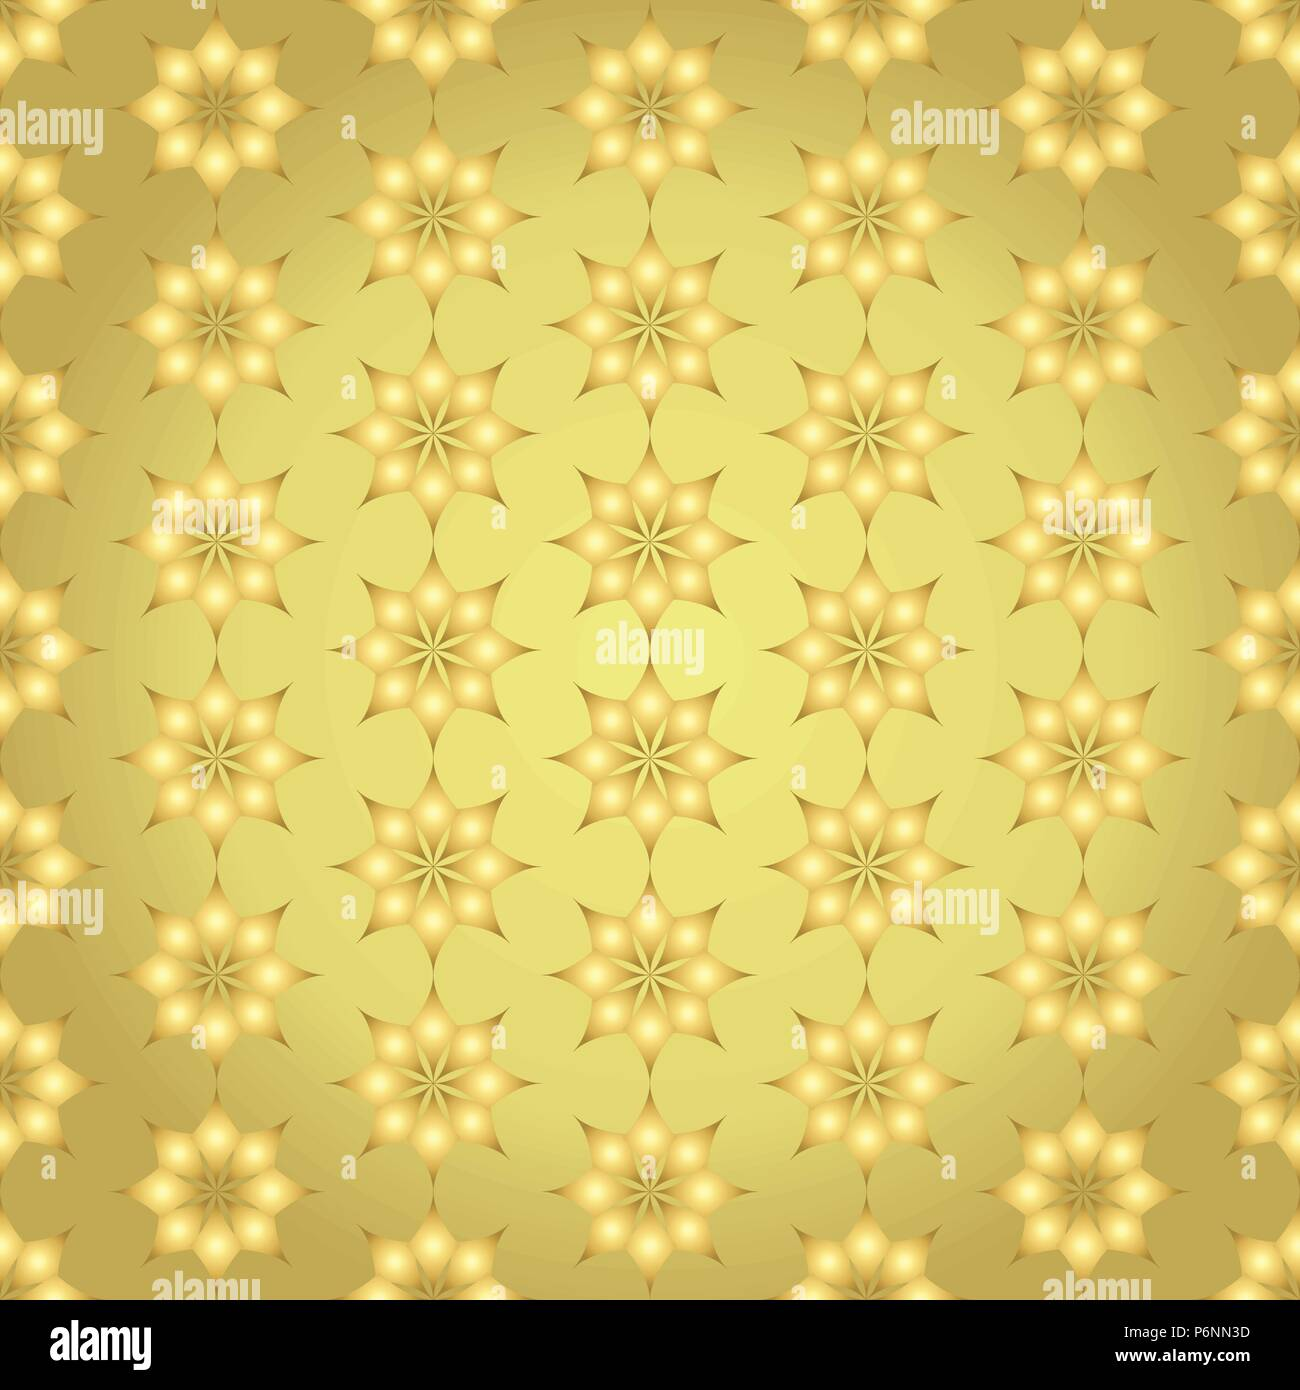 Gold modern classic bloom seamless pattern. Abstract blossom style for graphic and retro design. - Stock Vector